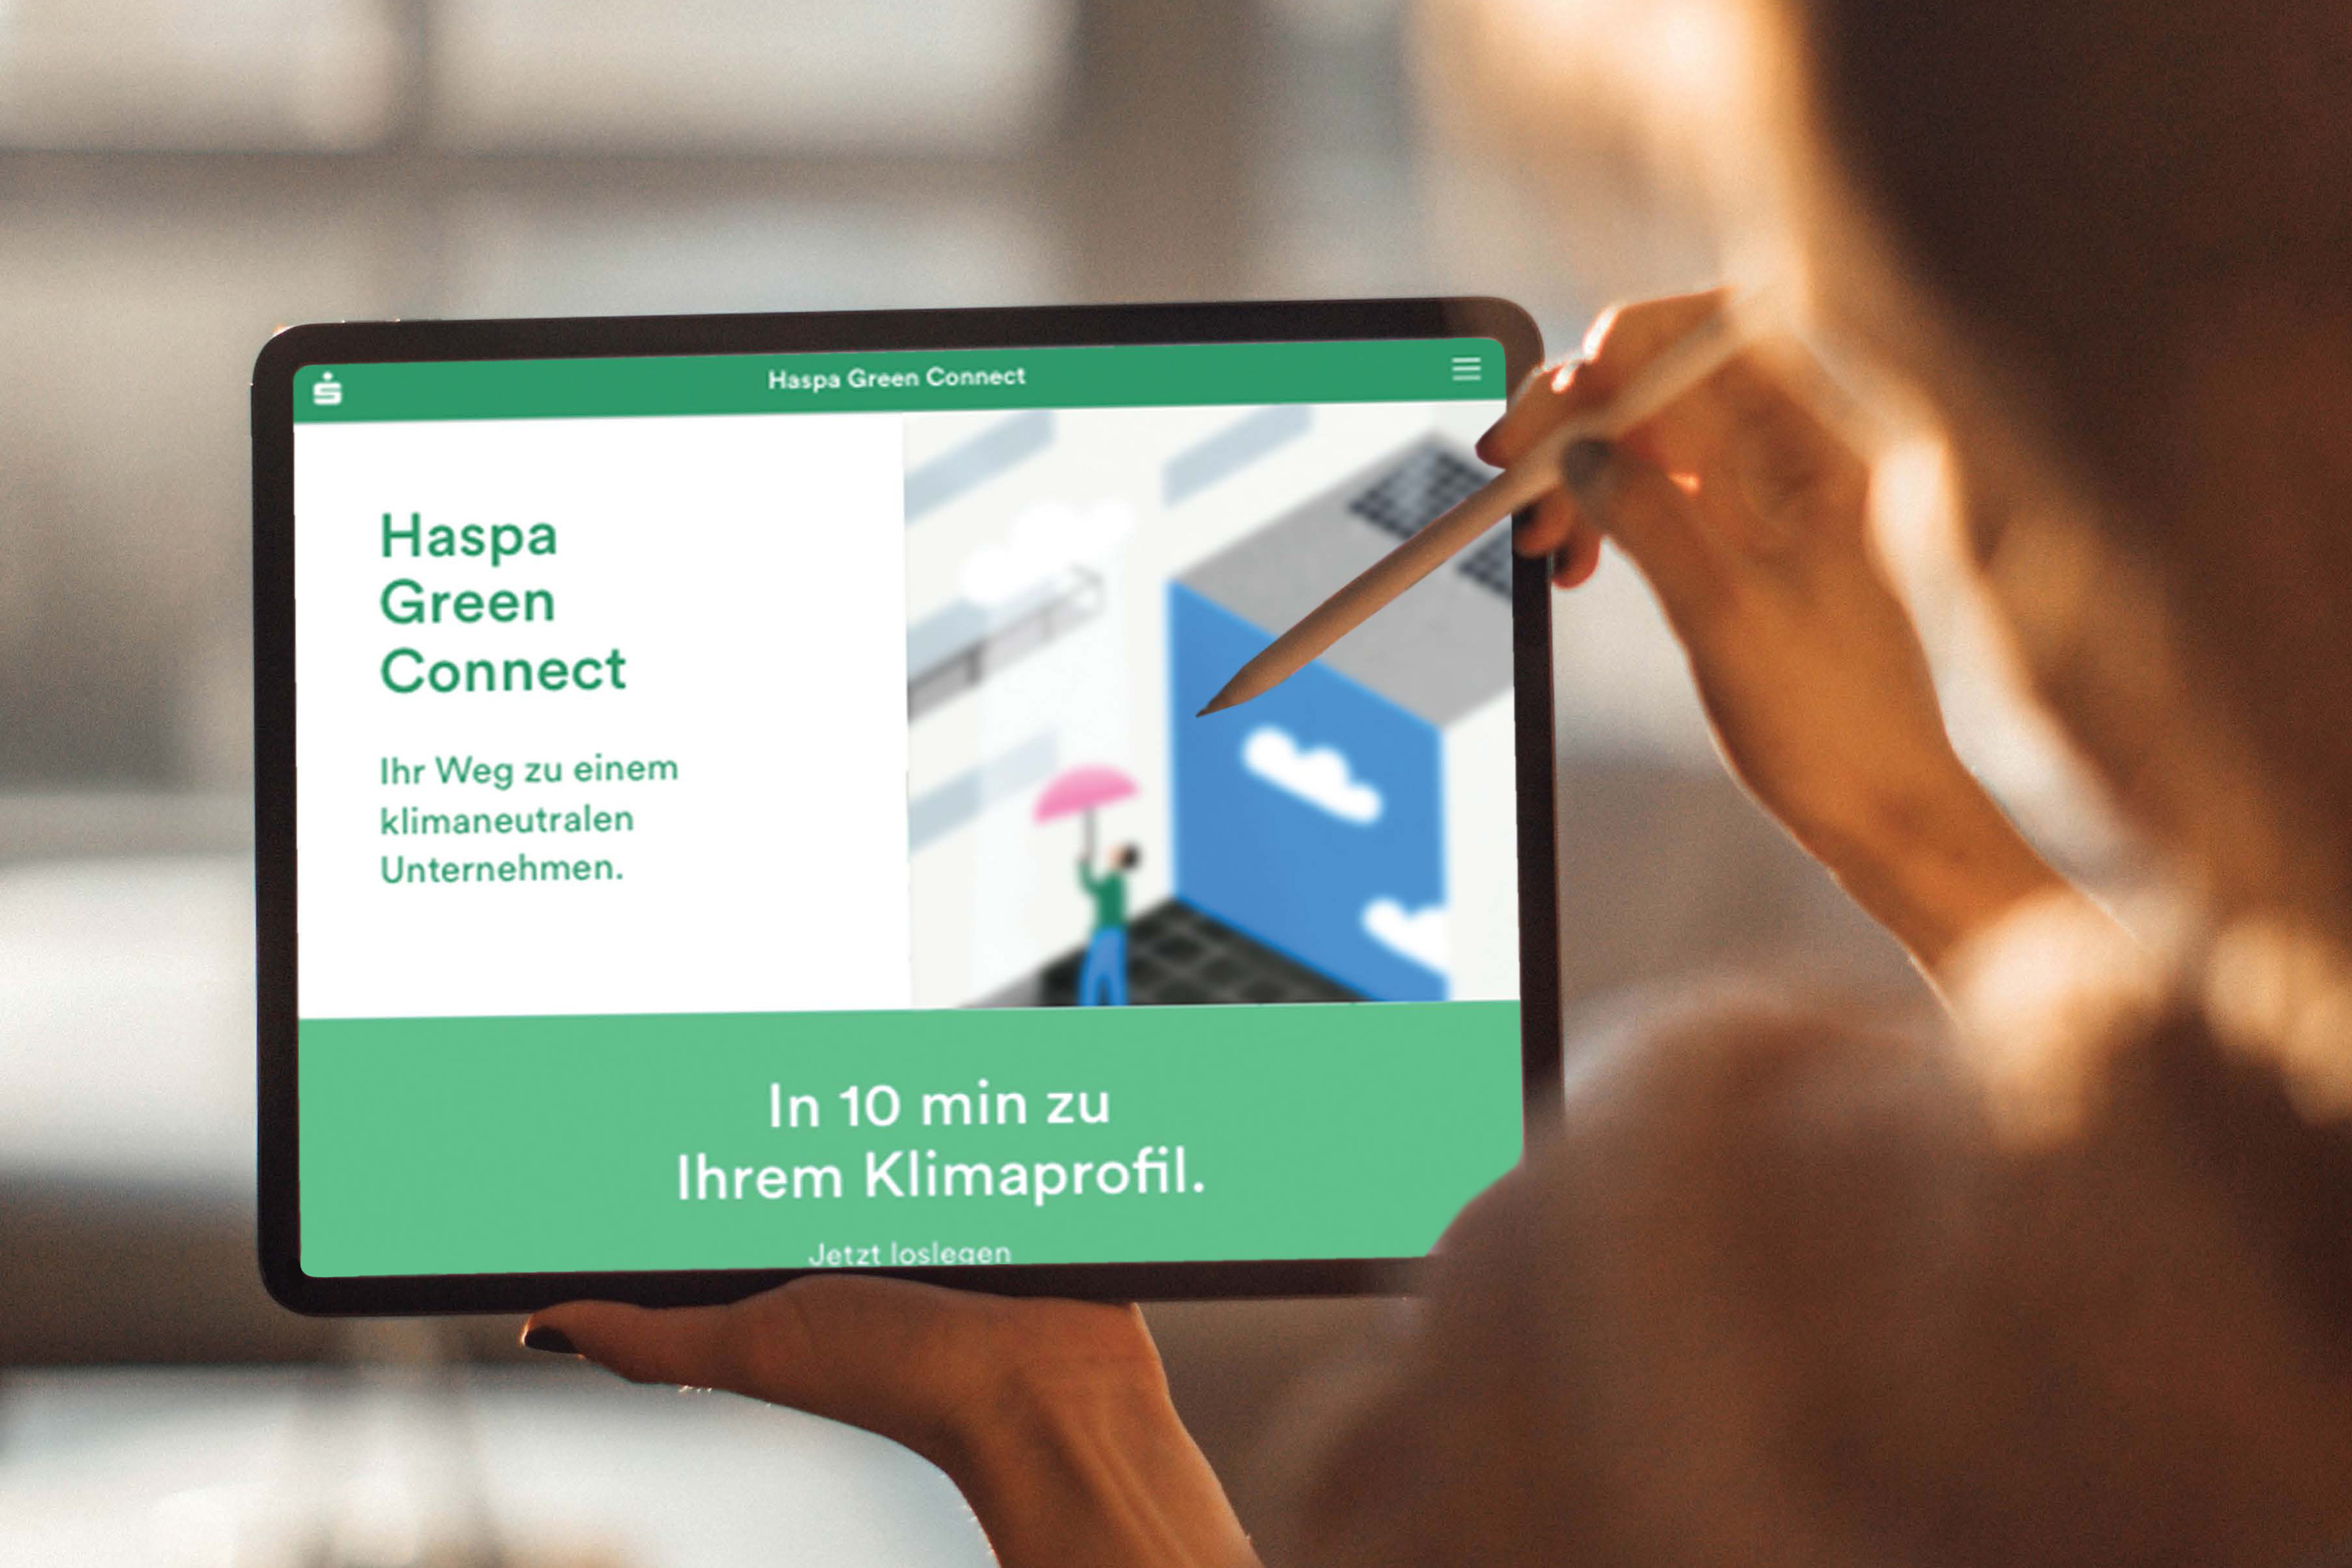 Woman holding iPad with HASPA Green Connect app